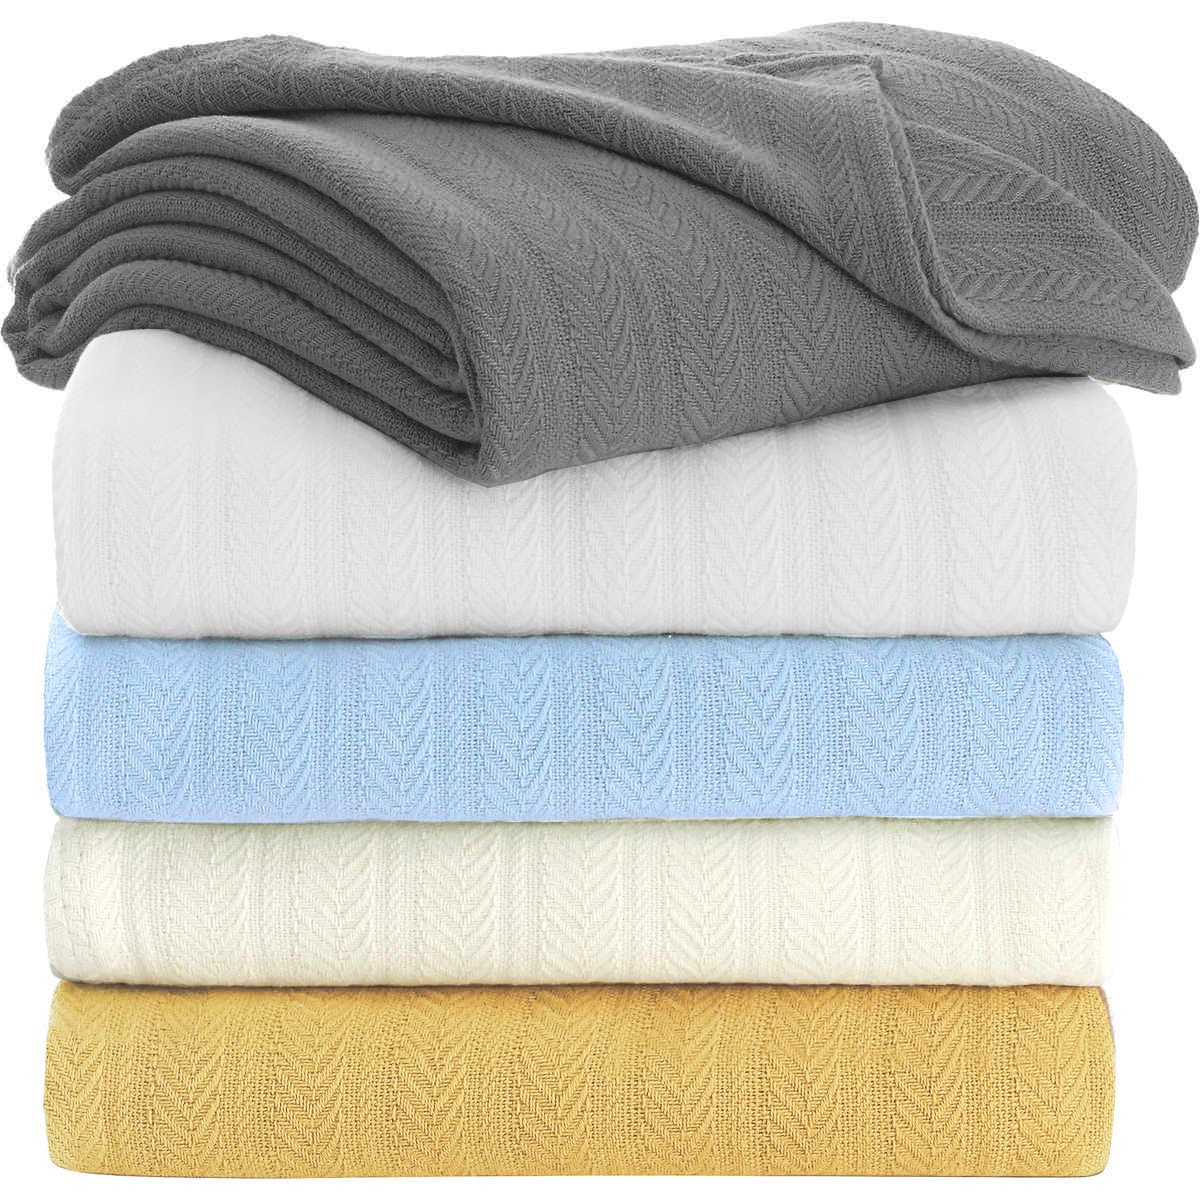 "TreeWool 100% Soft Premium Cotton Thermal Blanket in Stripe Weave - Easy Care Comfortable and Warm Season Bed Layering (Queen Size - 90"" x 90"", White)"